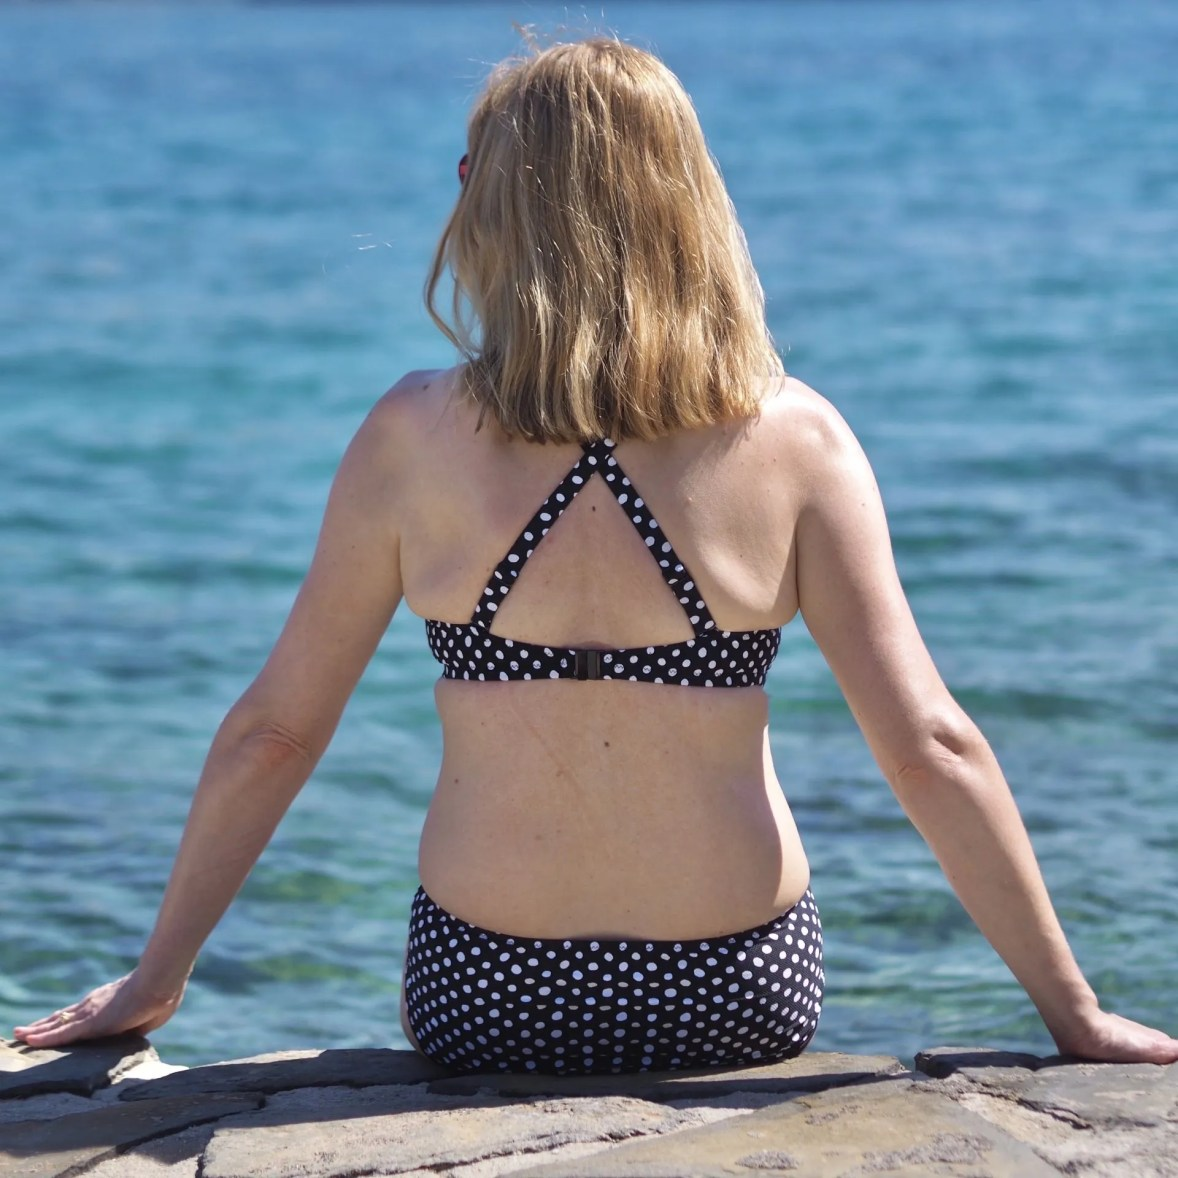 Holiday outfits: black spotted bikini